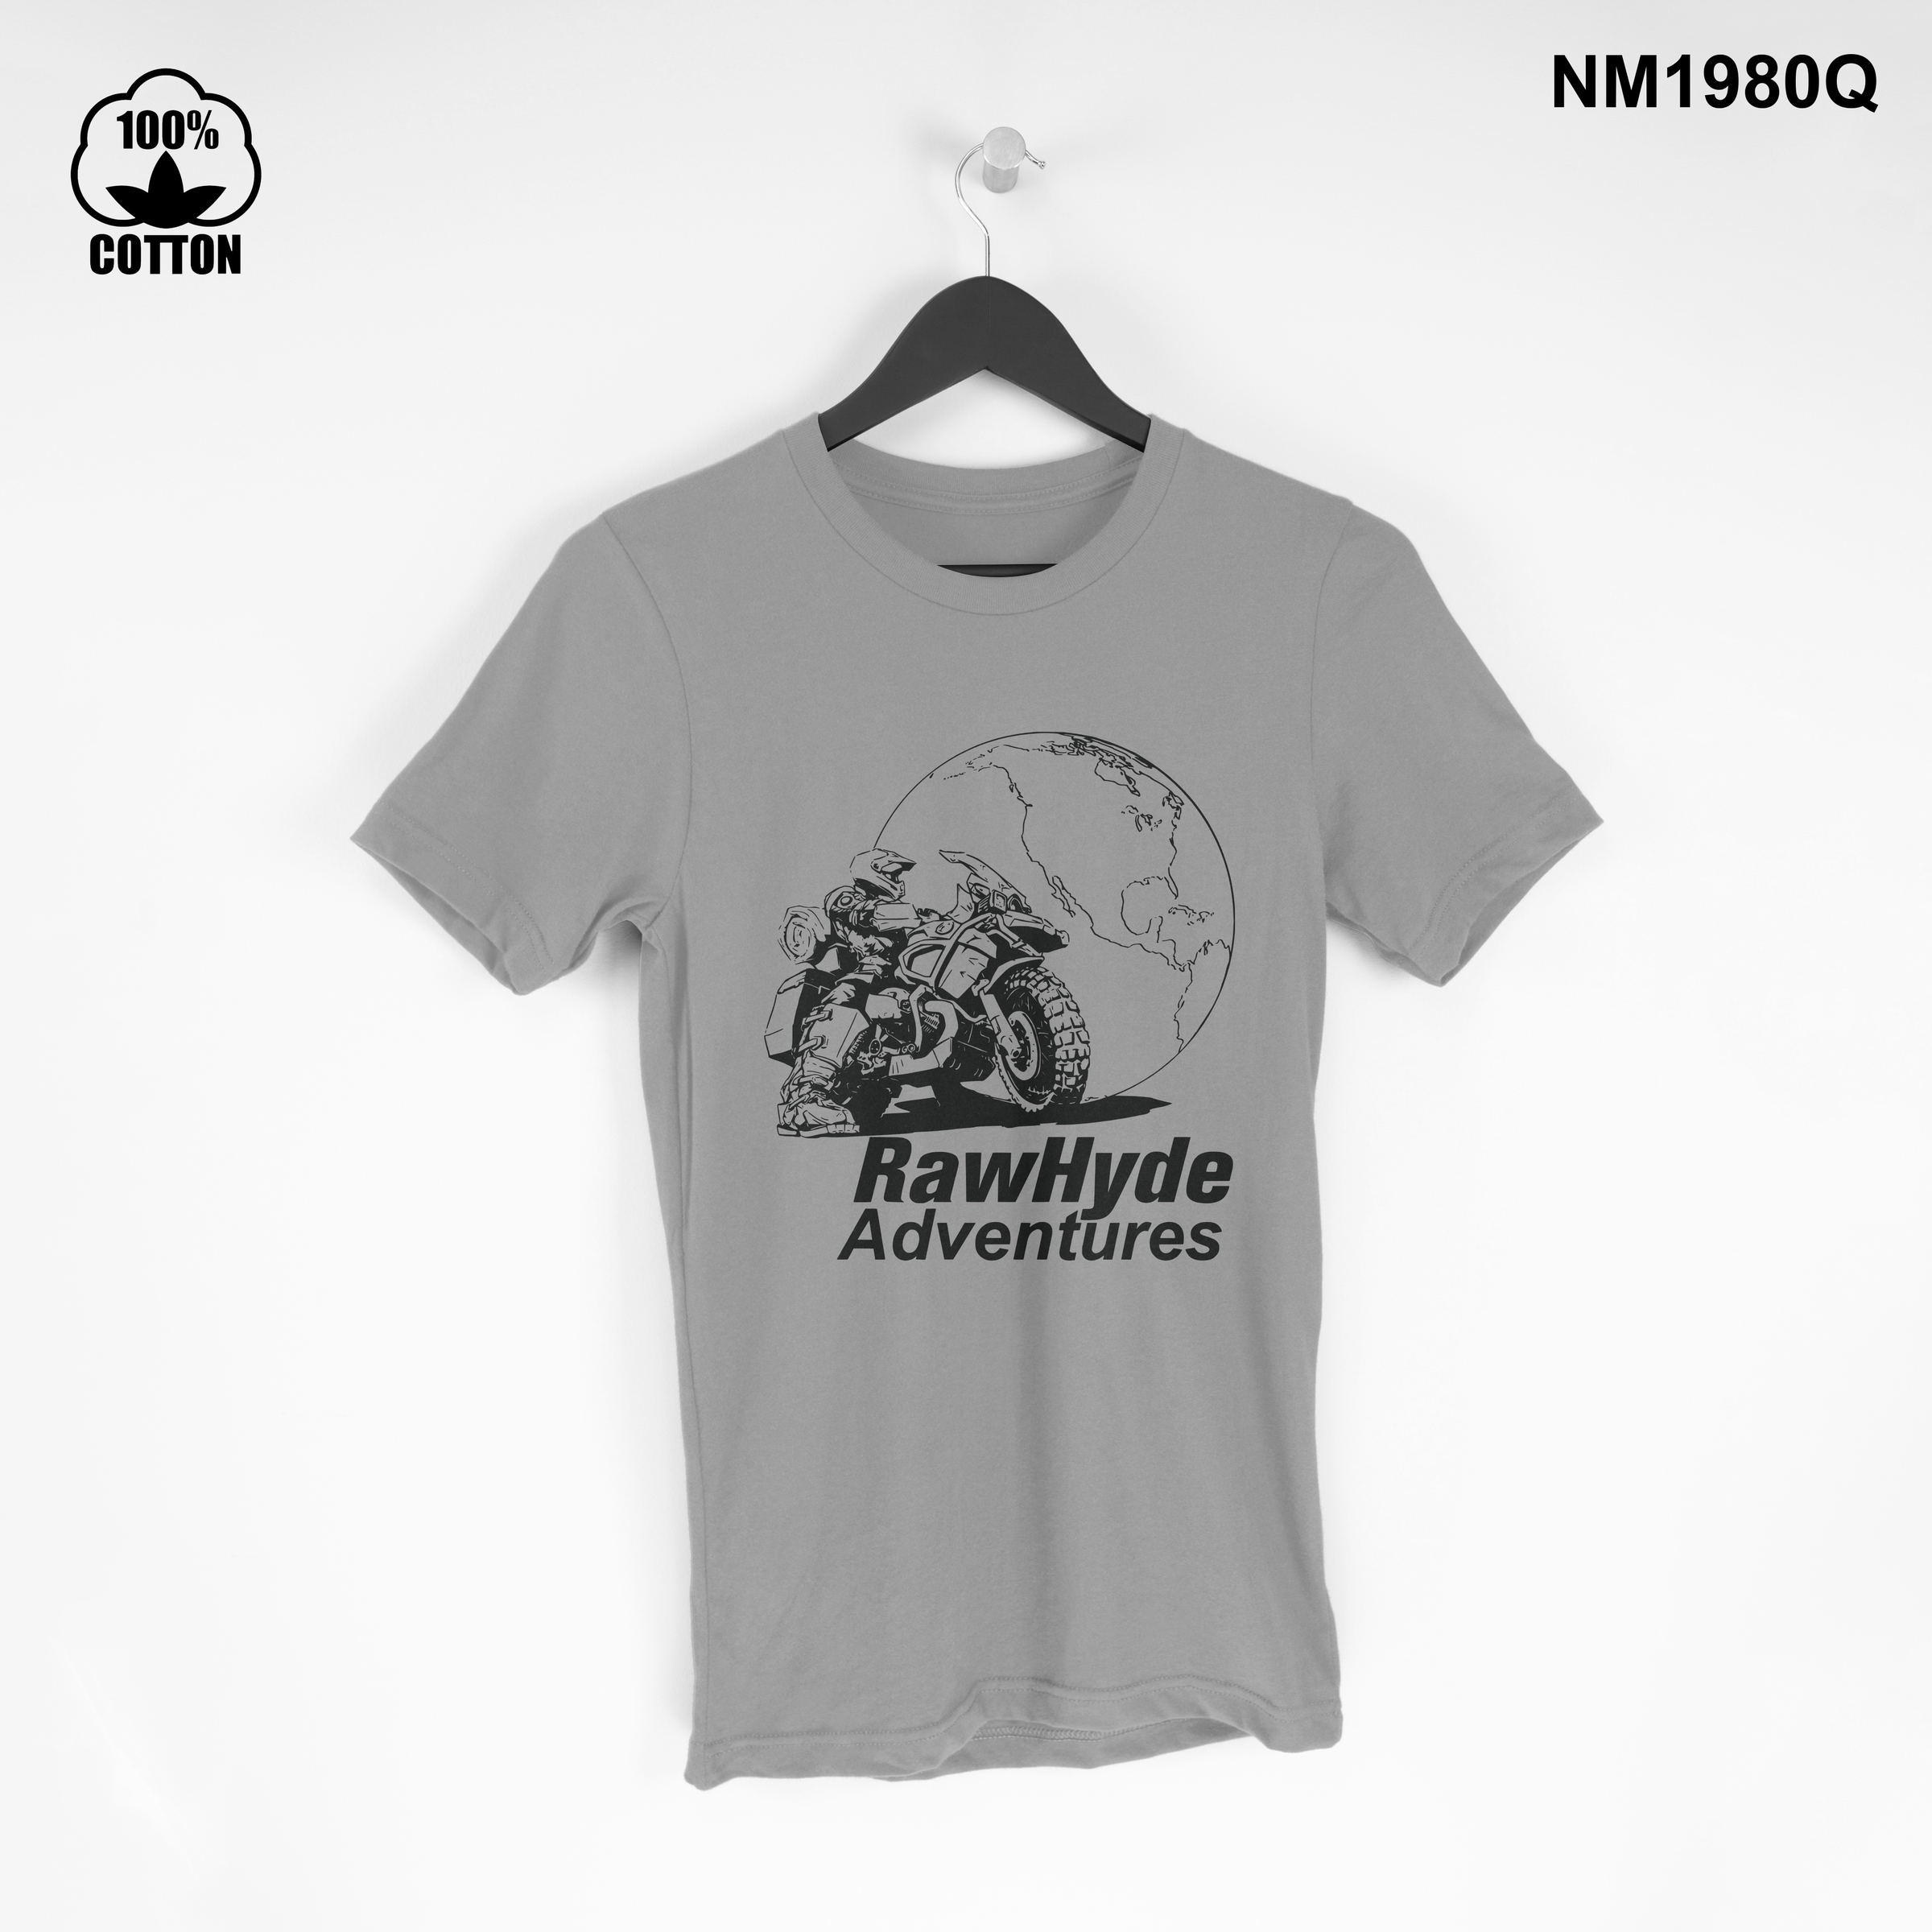 1.48 New Design Raw Hyde Adventures Idea From  BMW R1200GS In The World gainsboro.jpg